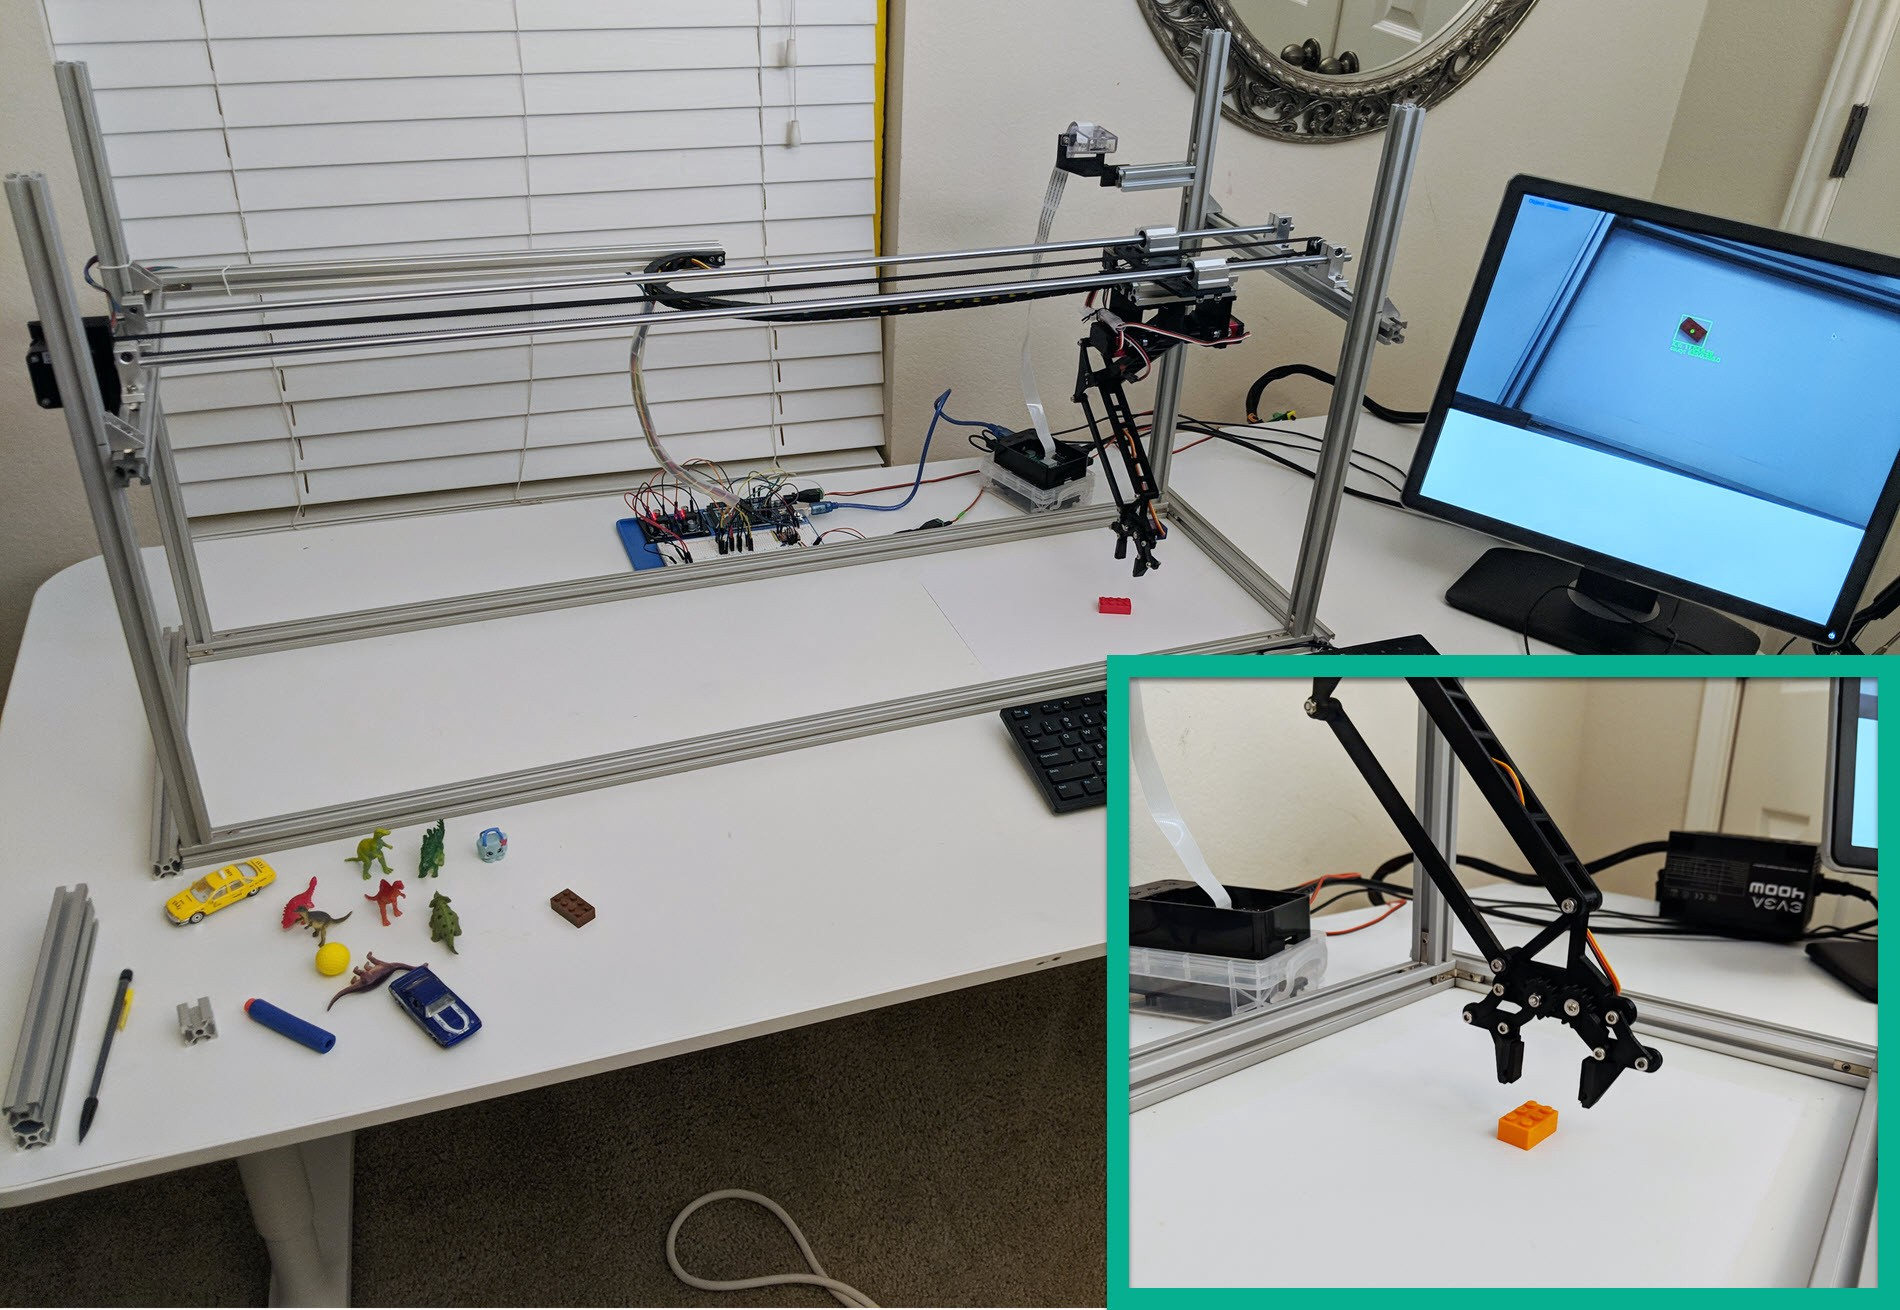 Computer Vision Pick and Place for Toys using Raspberry Pi and Arduino